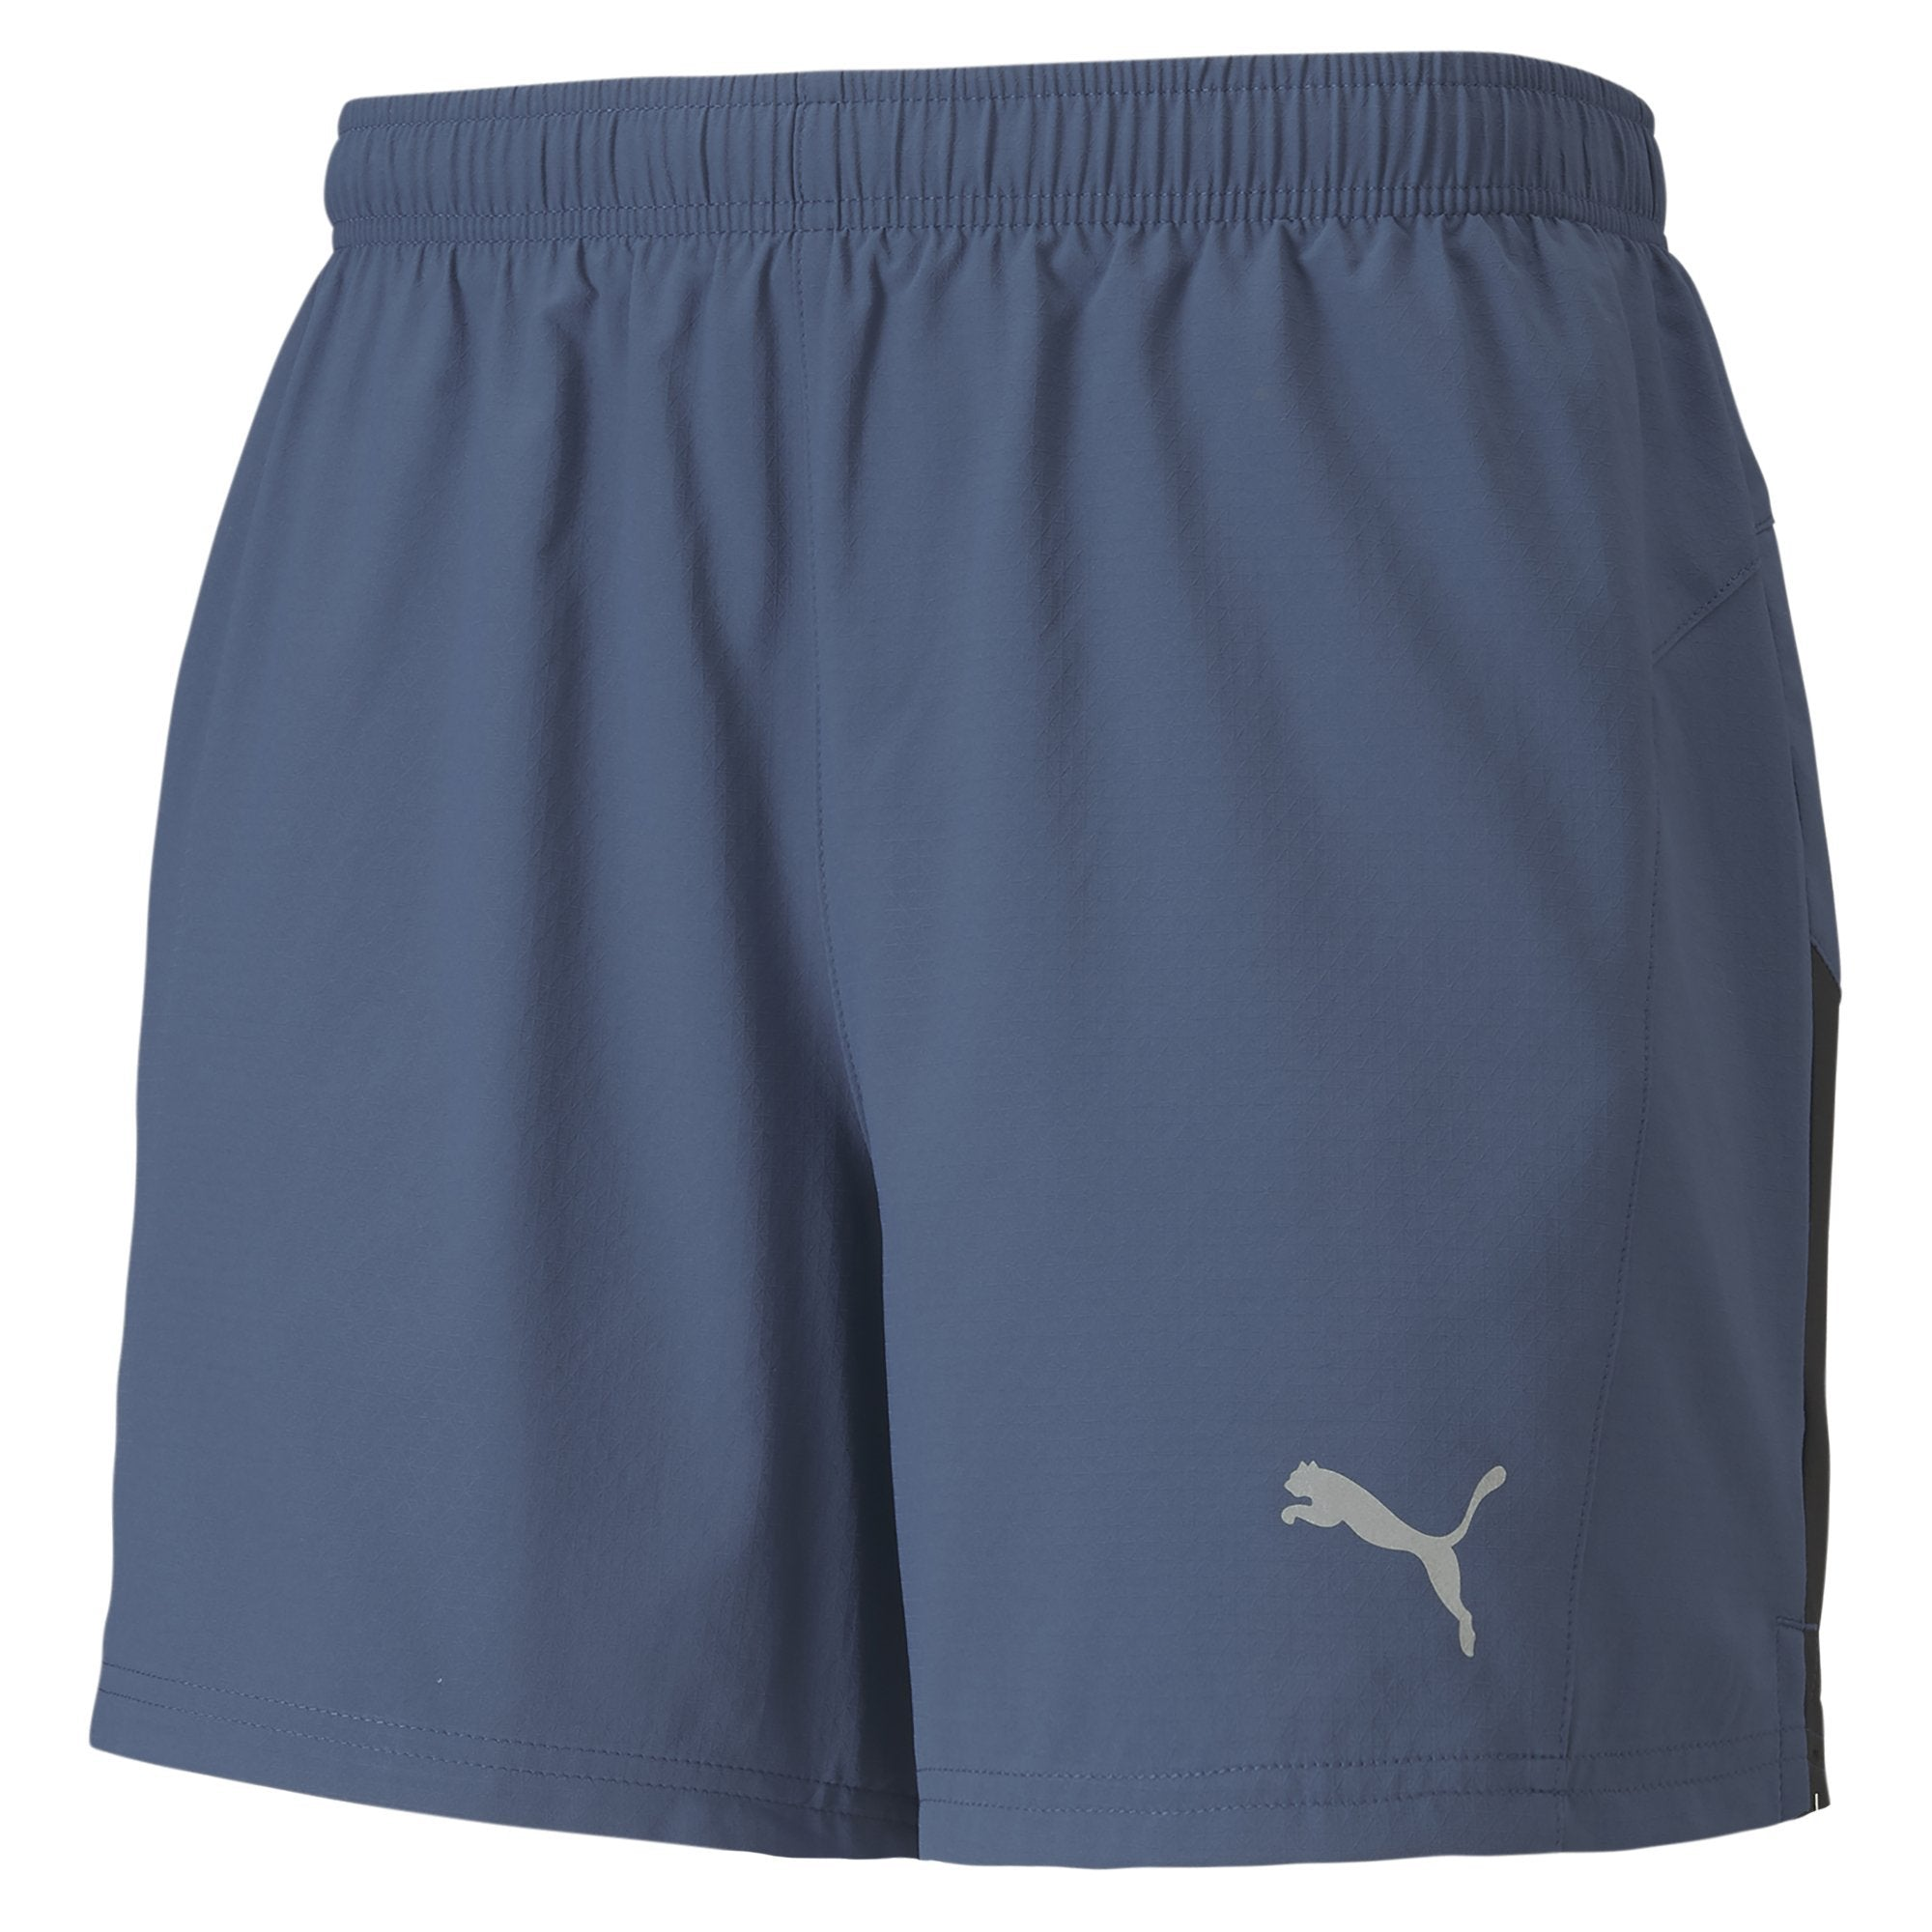 Puma Ignite Session 5 Shorts Apparel - Men Puma